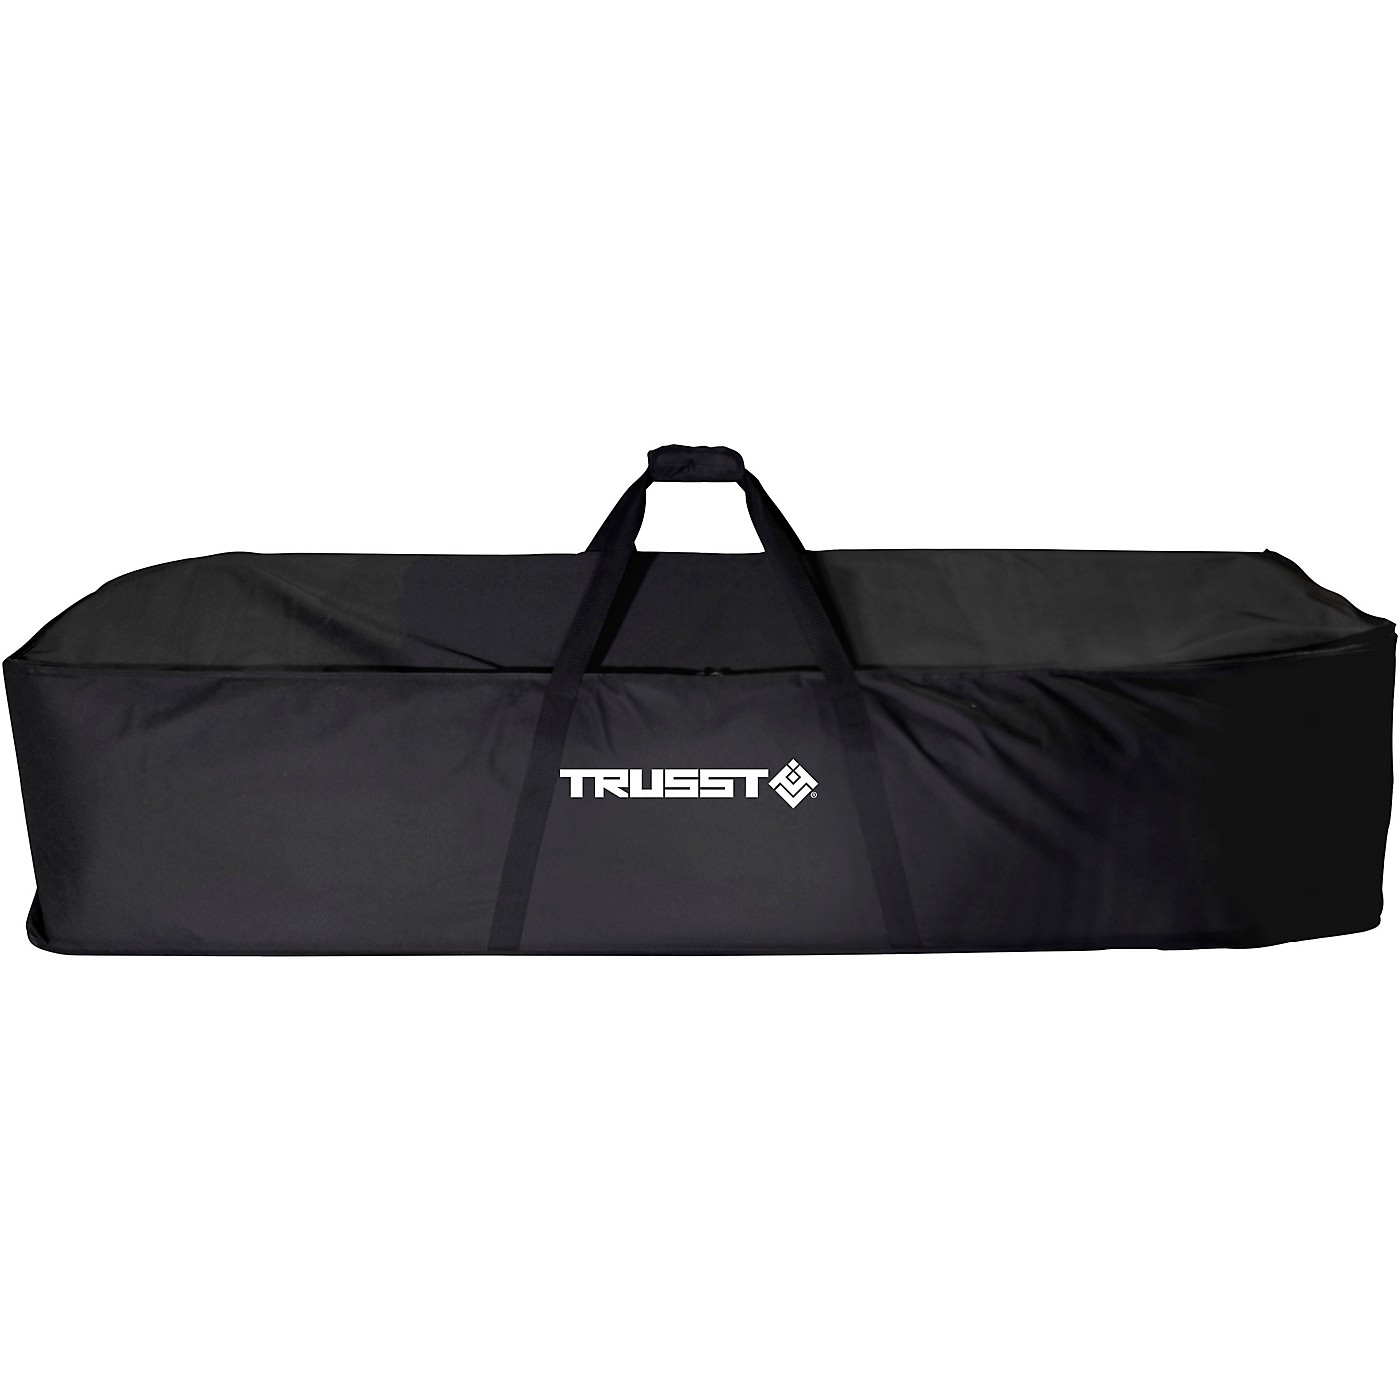 TRUSST VIP Gear Bag for Goal Post Kit thumbnail